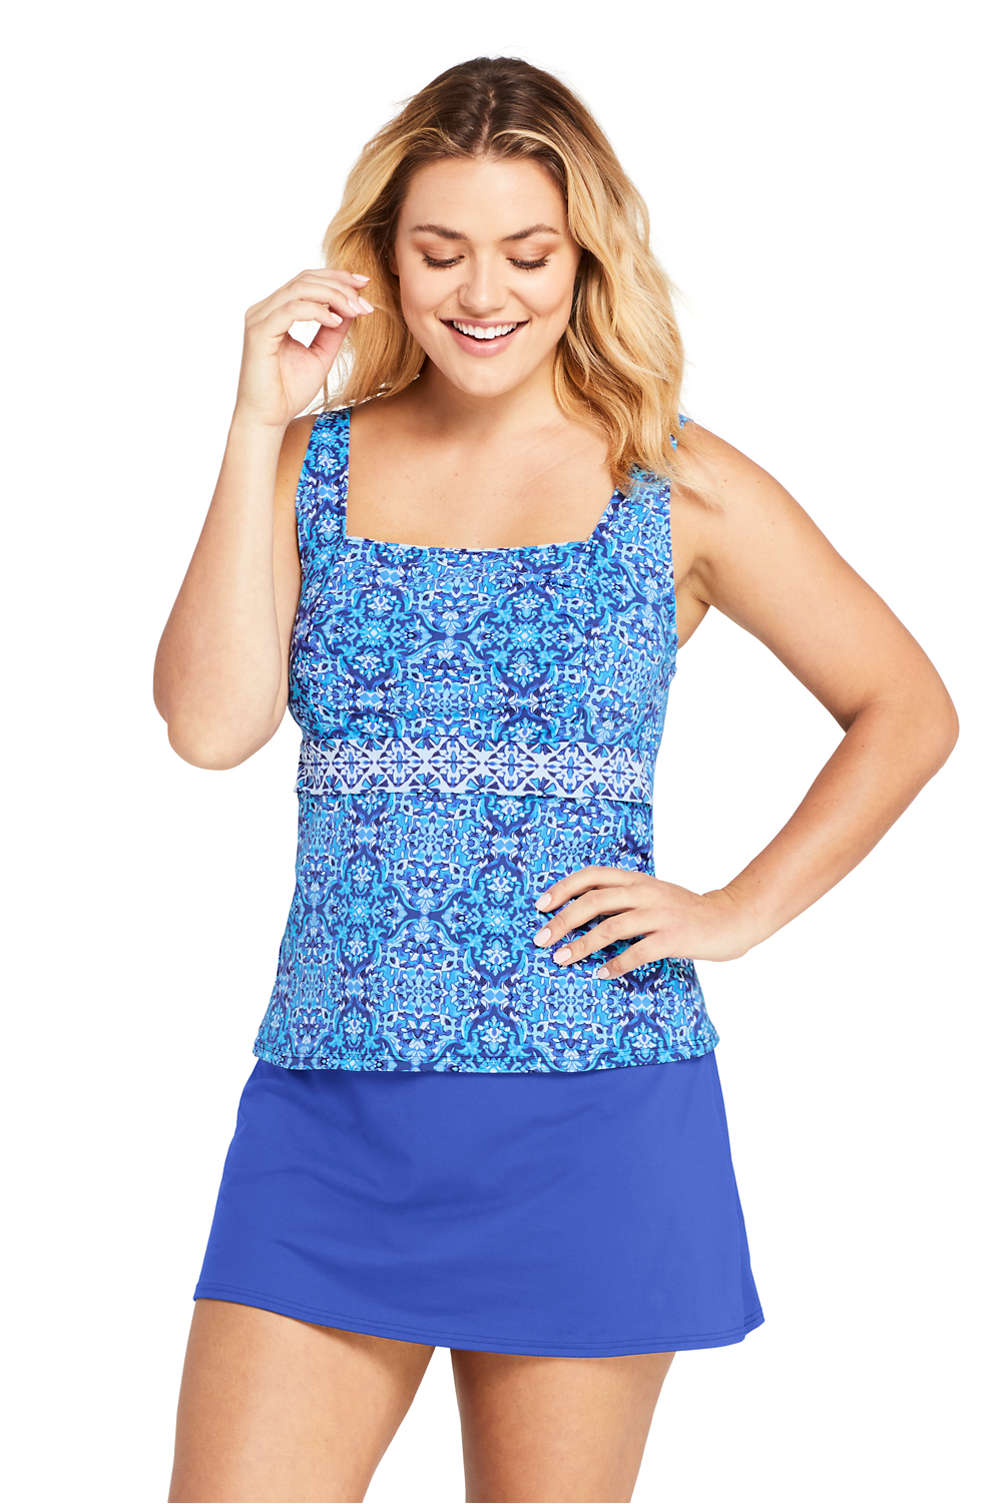 851912394abfe Swimwear Swimming Lands End Womens Plus Size Square Neck Underwire Tankini  Top Swimsuit Print